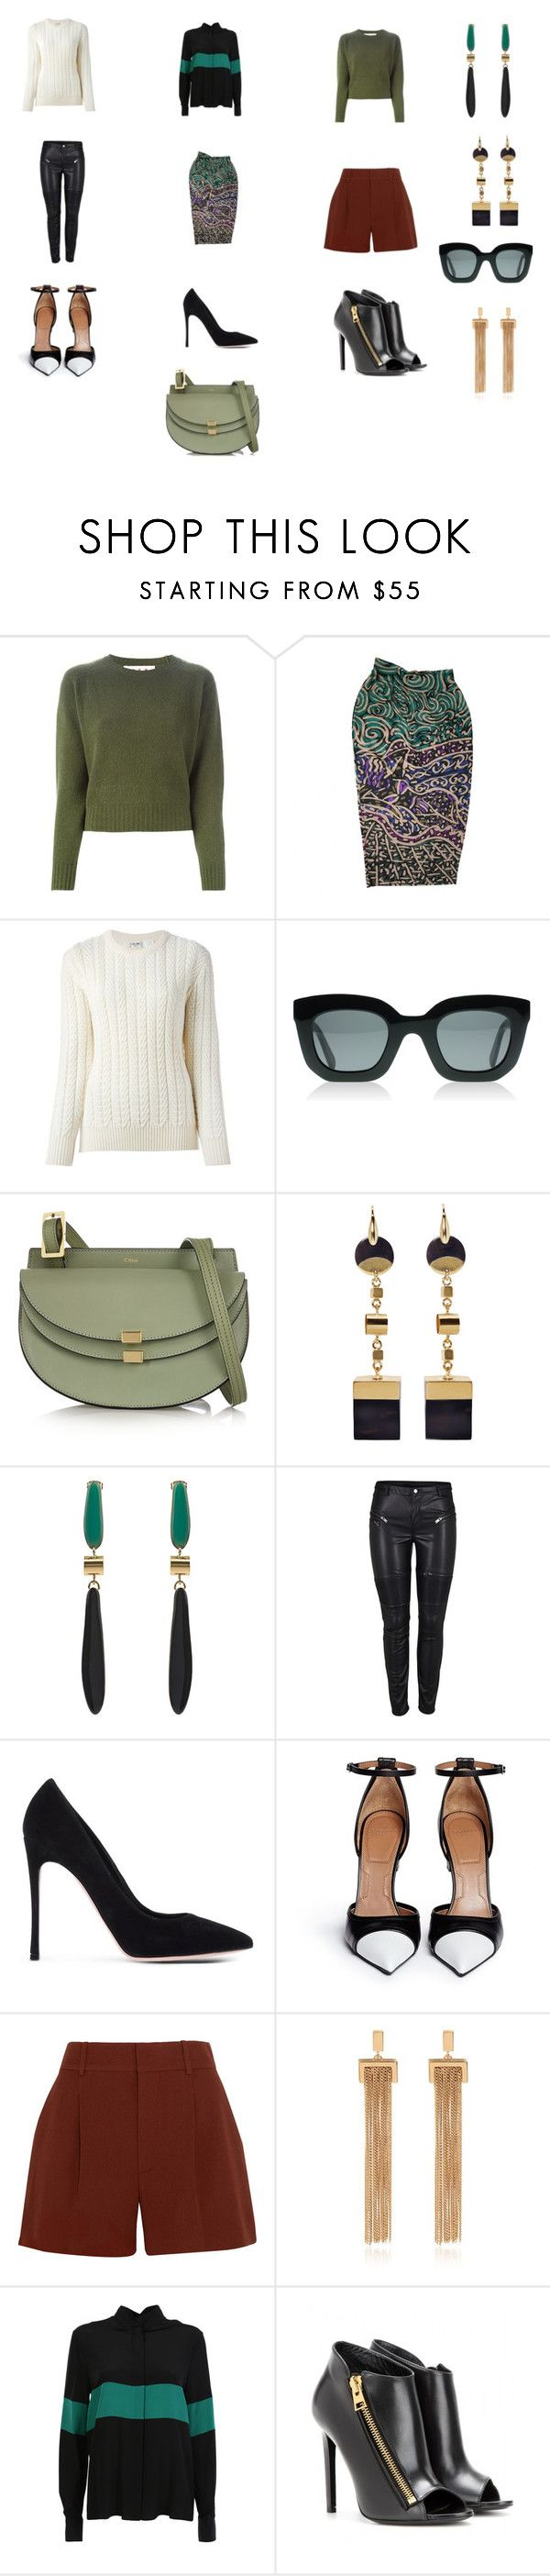 """""""Let it be"""" by mousouza on Polyvore featuring Marni, Missoni, CÉLINE, Chloé, Isabel Marant, Gianvito Rossi, Givenchy, Fendi and Tom Ford"""